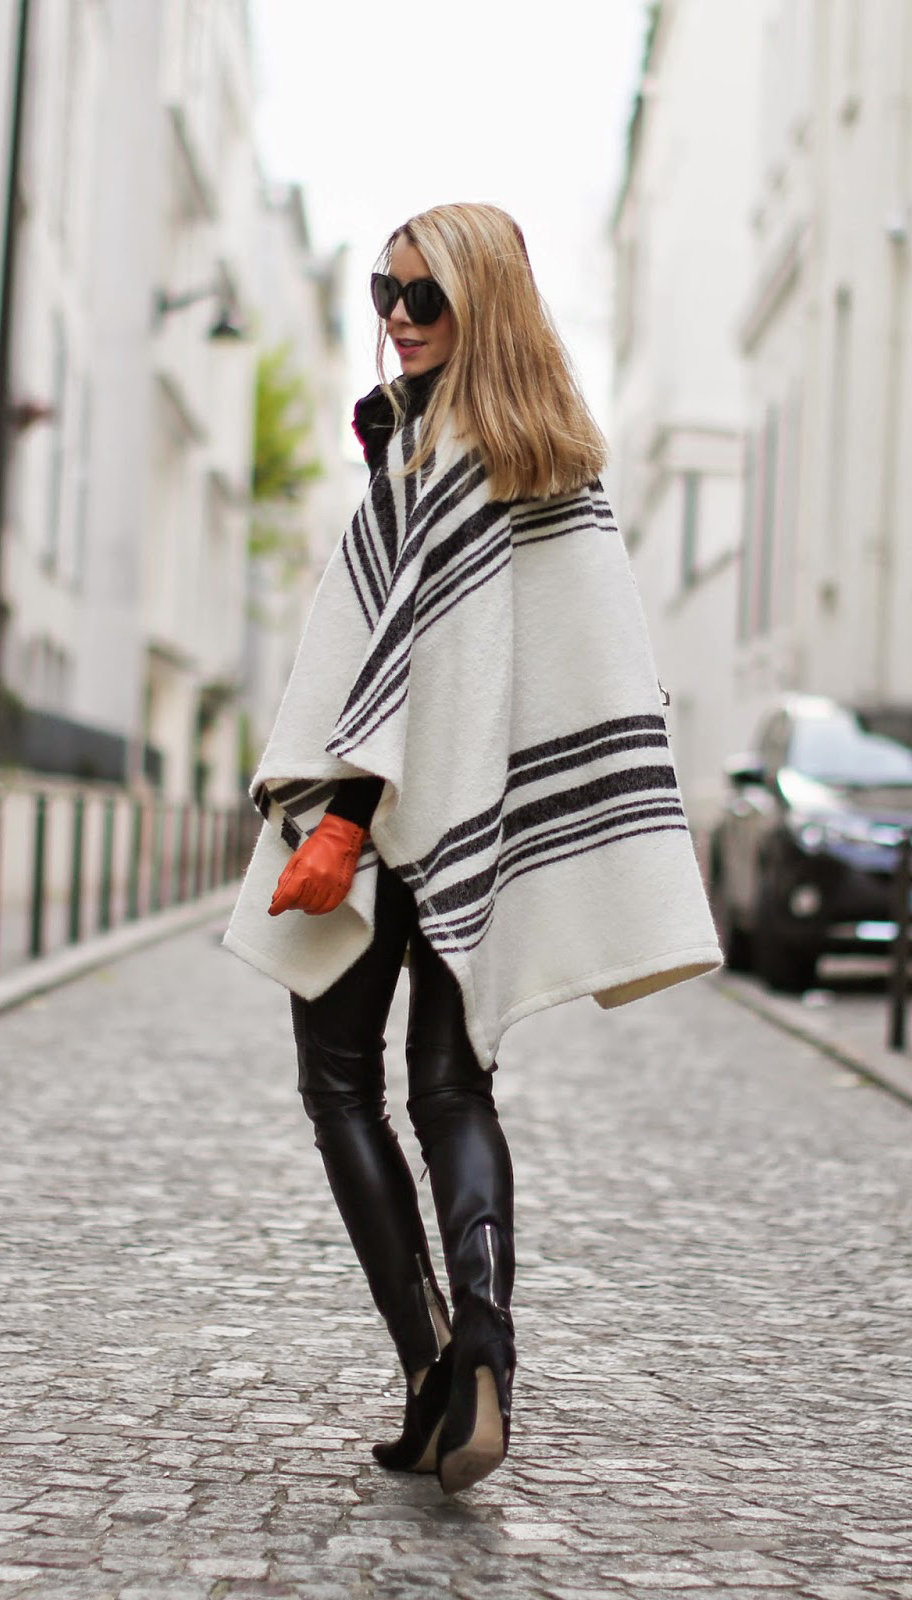 Best Capes Style: Caroline Louis is wearing a black striped white cape from Zara